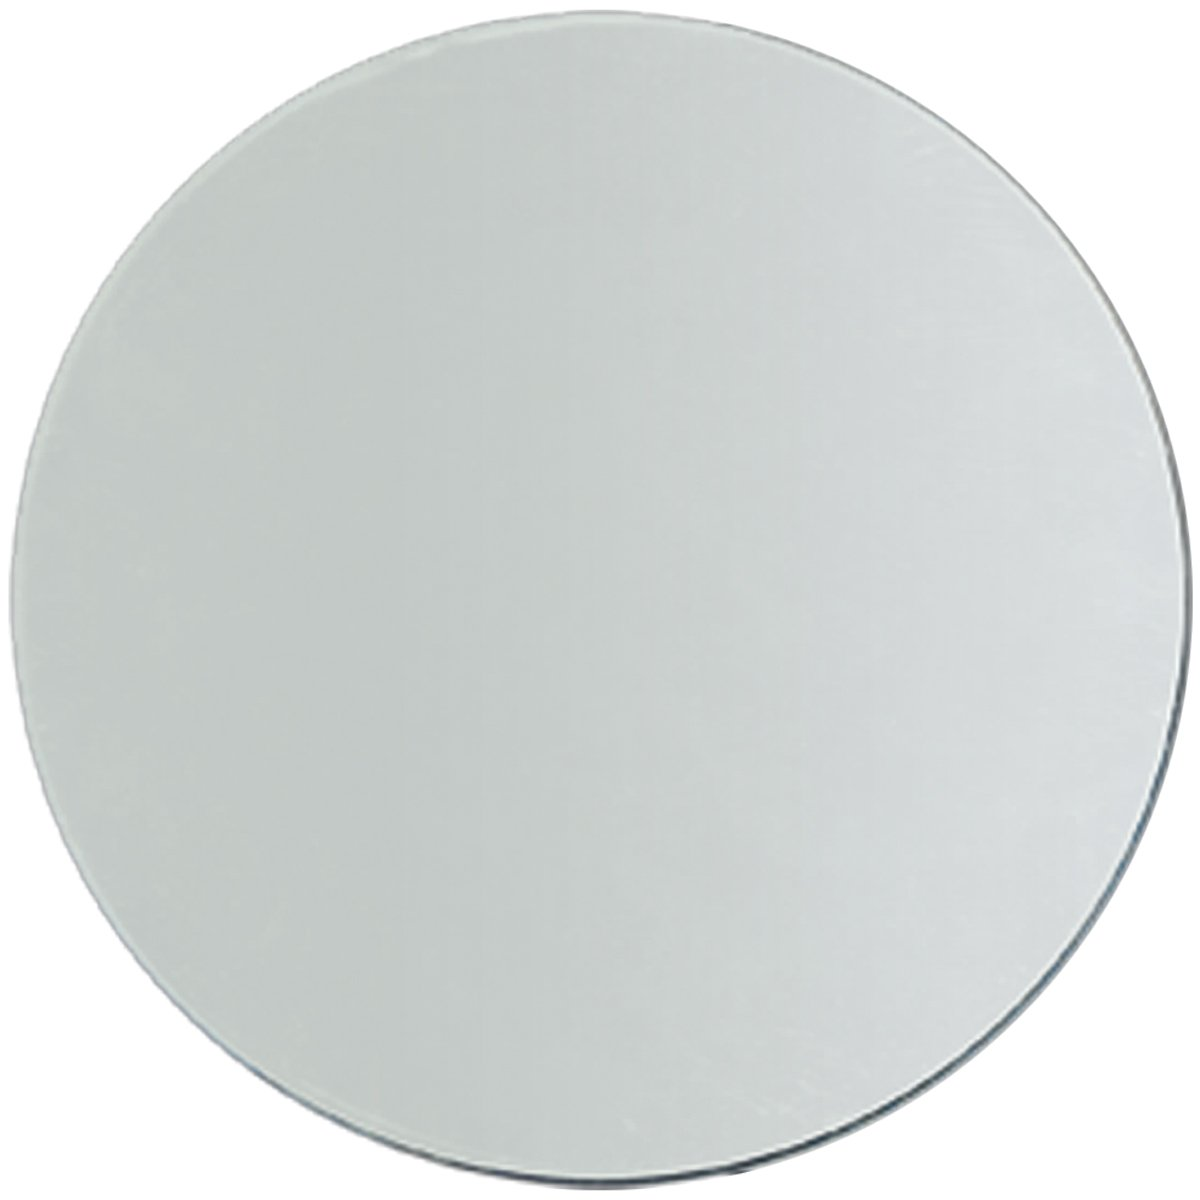 98 round glass mirrors wedding centerpieces winsome for 12 inch round table mirrors